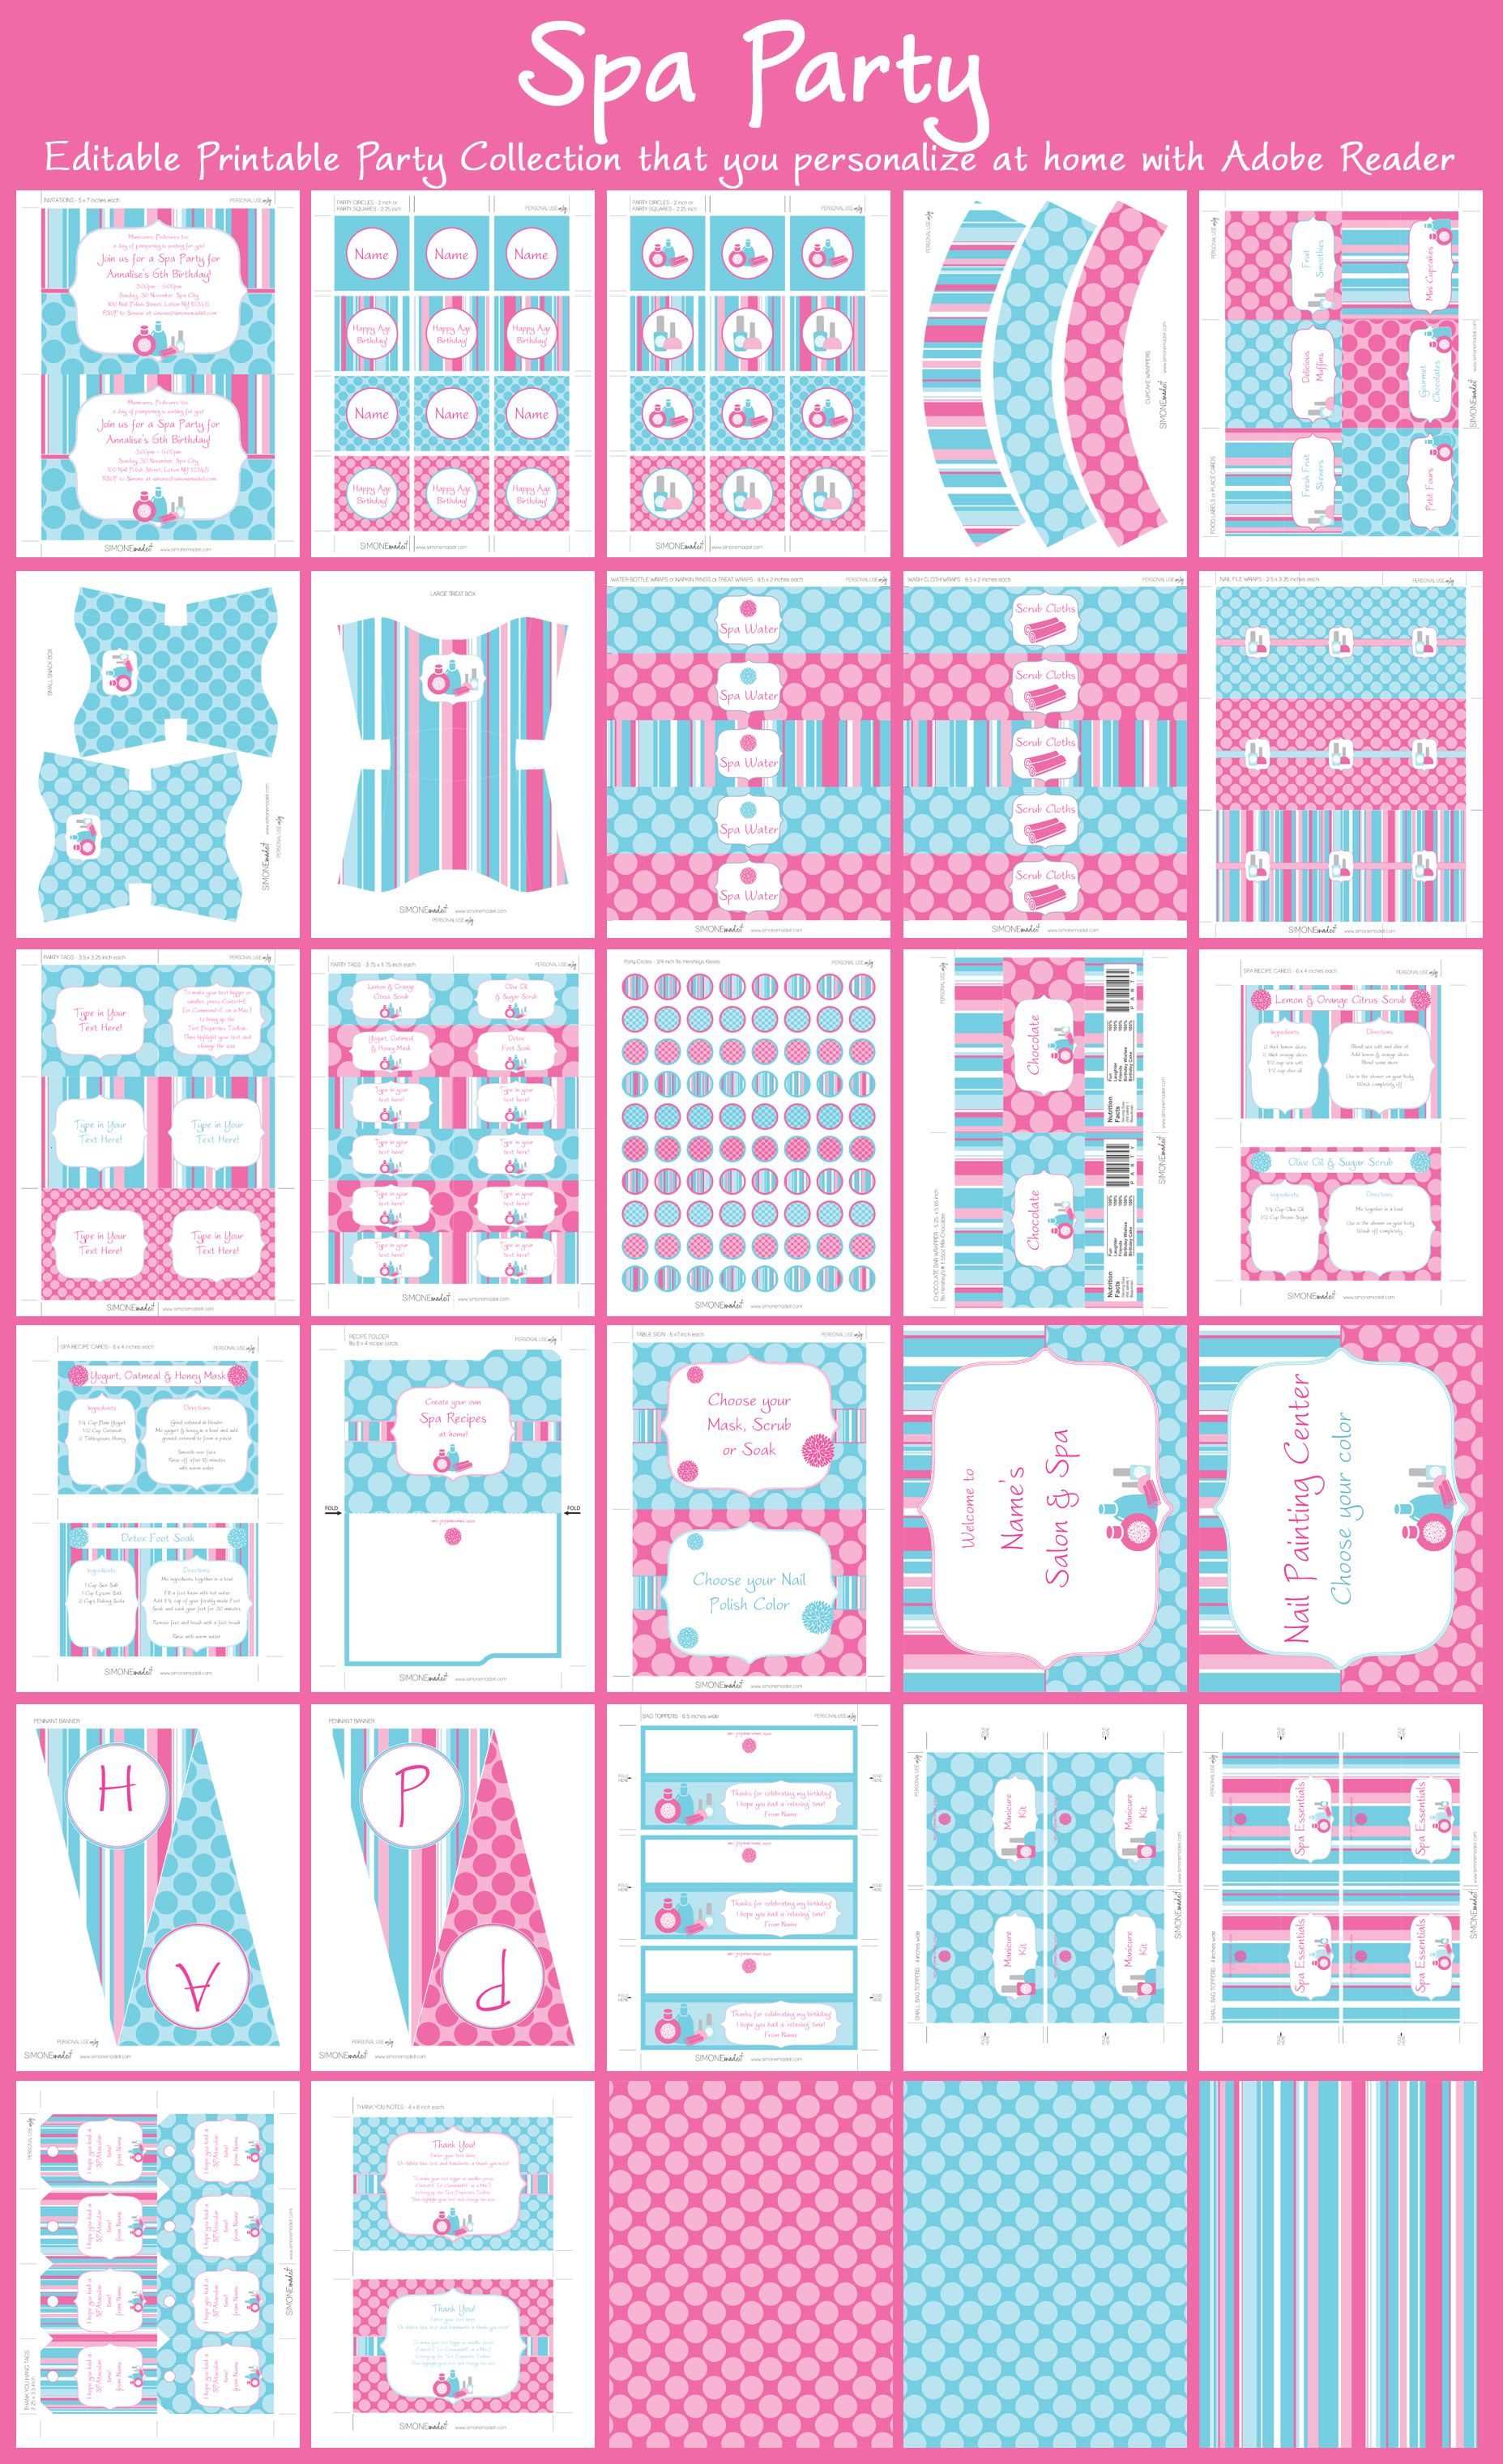 Spa Party Printables, Invitations & Decorations | Spa party, Spa ...